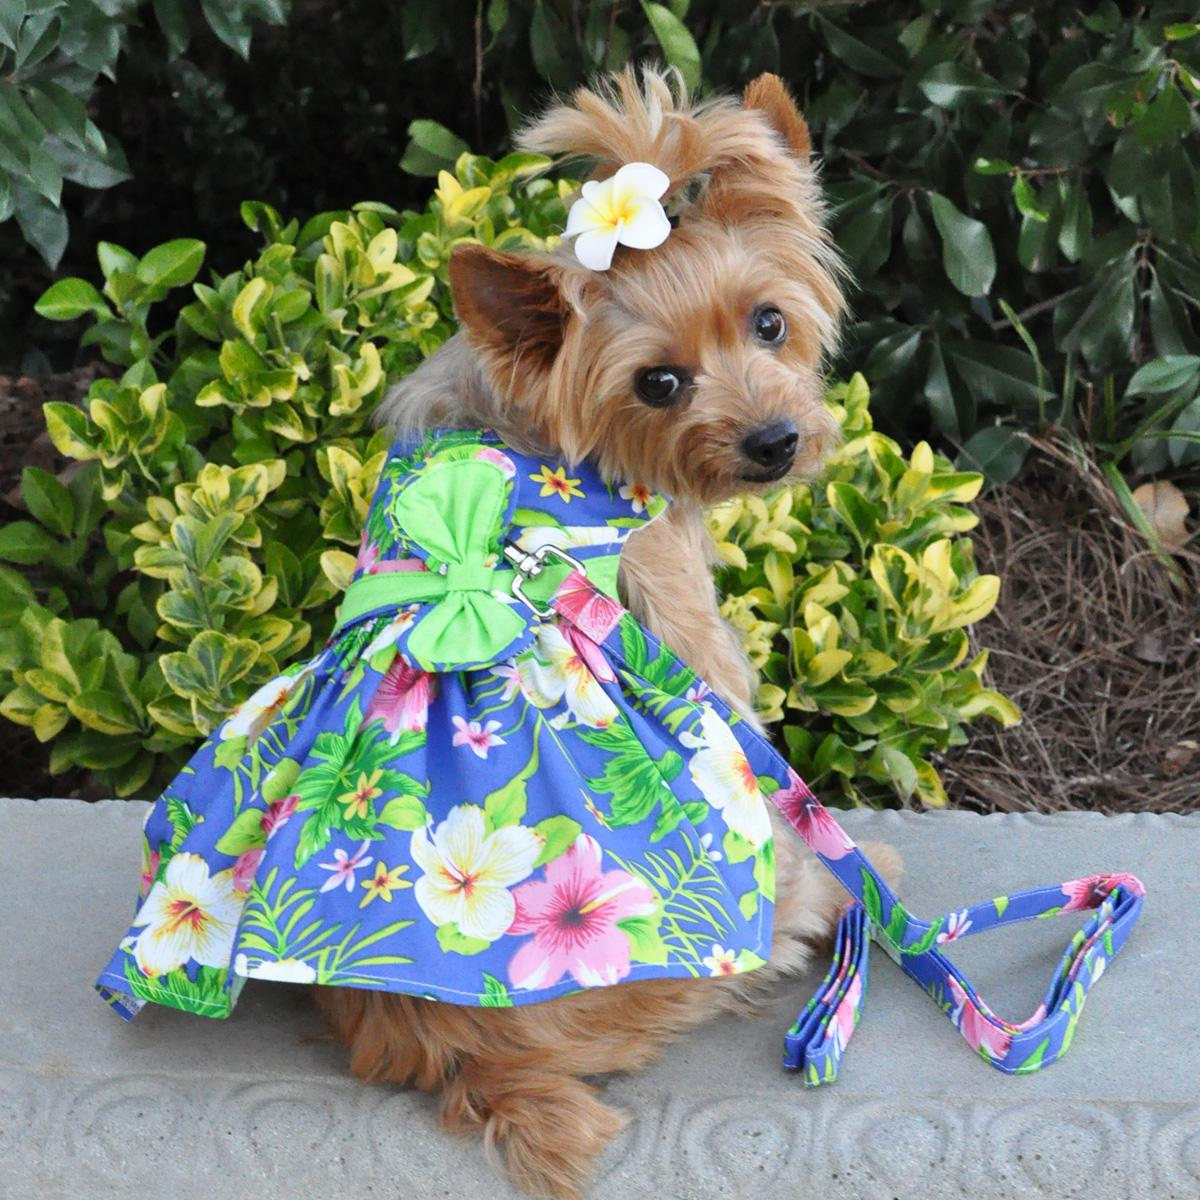 Small dog clothes, small dog harnesses, small dog carriers